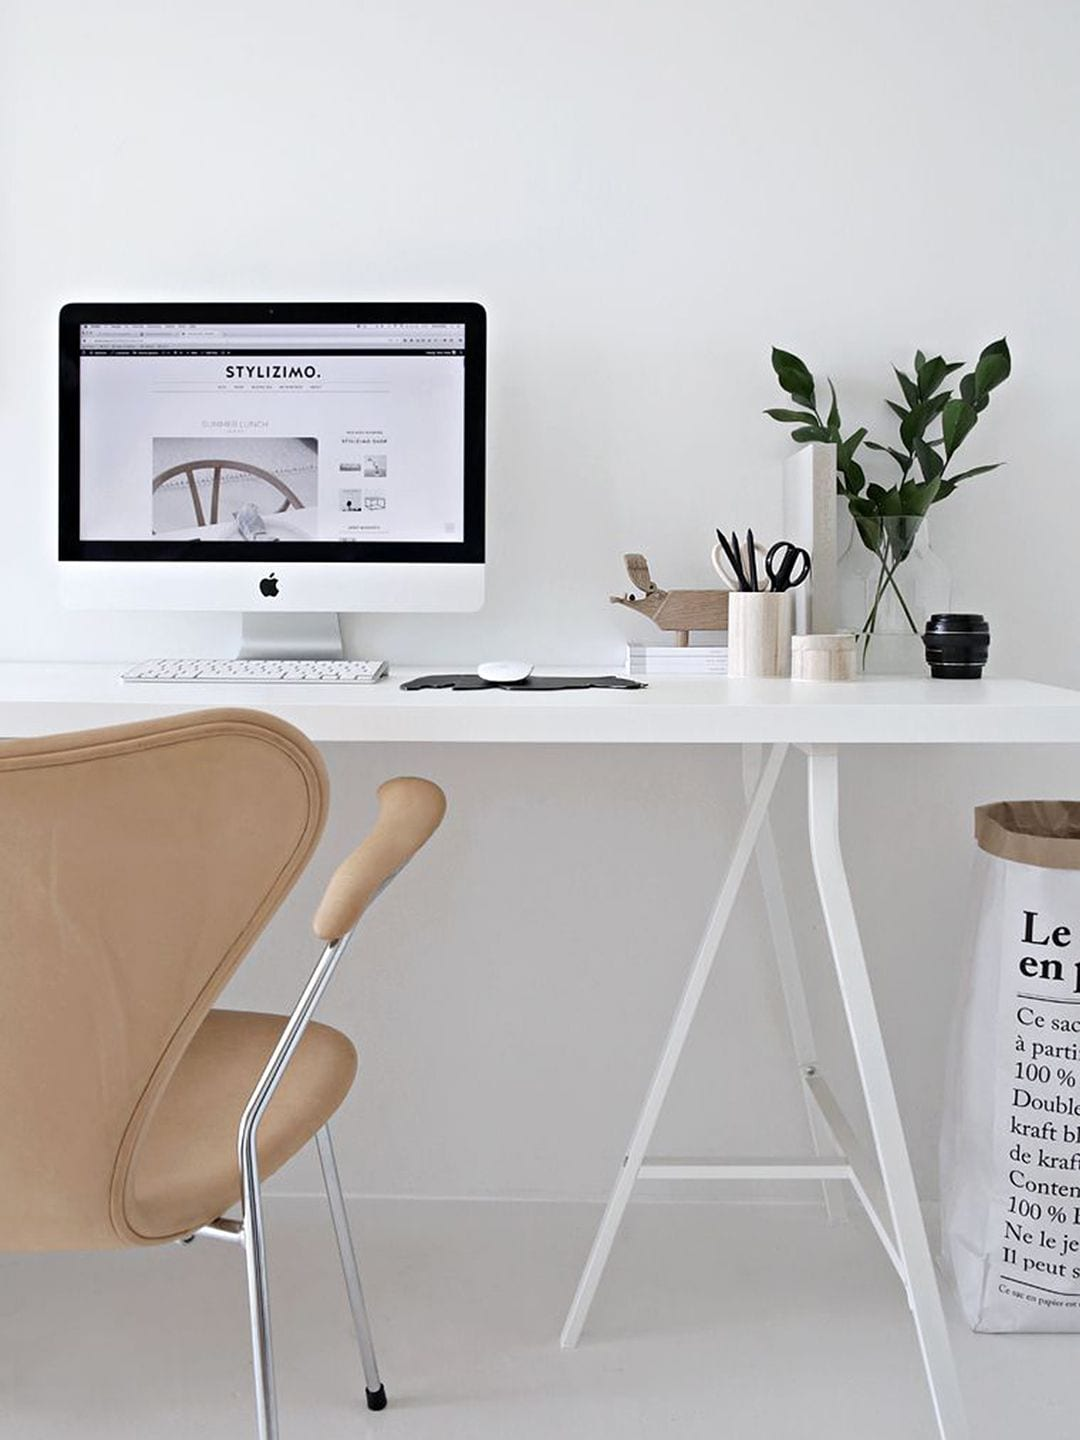 dining table and chair set uk graco duodiner high scandinavian home office design ideas | style&minimalism